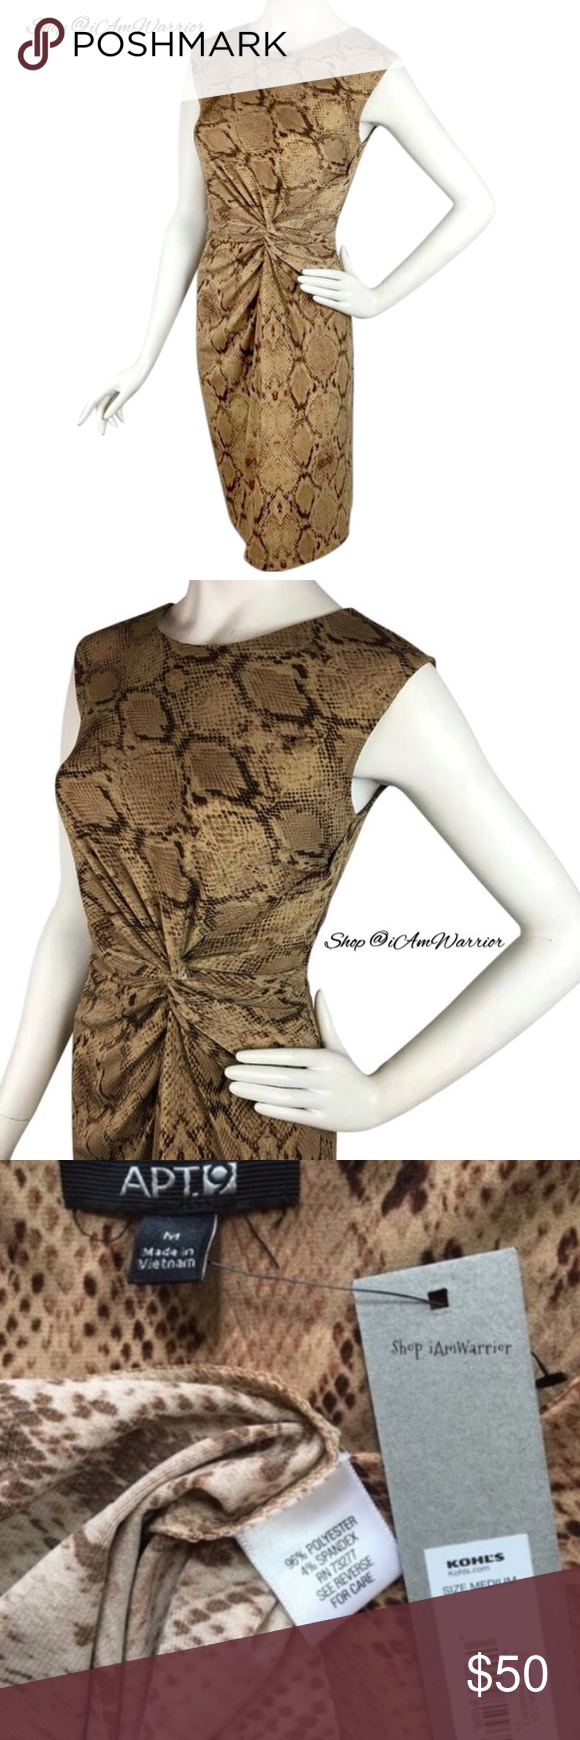 🆕NWT Pretty animal print twist knot stretch dress 🆕Great little camel & brown animal print dress with flattering side twist knot style.  Soft stretchy fabric. A seasonless & versatile dress. No longer sold!❗Please read my recently updated 'about me and my closet' listing for pricing/policies. Apt. 9 Dresses